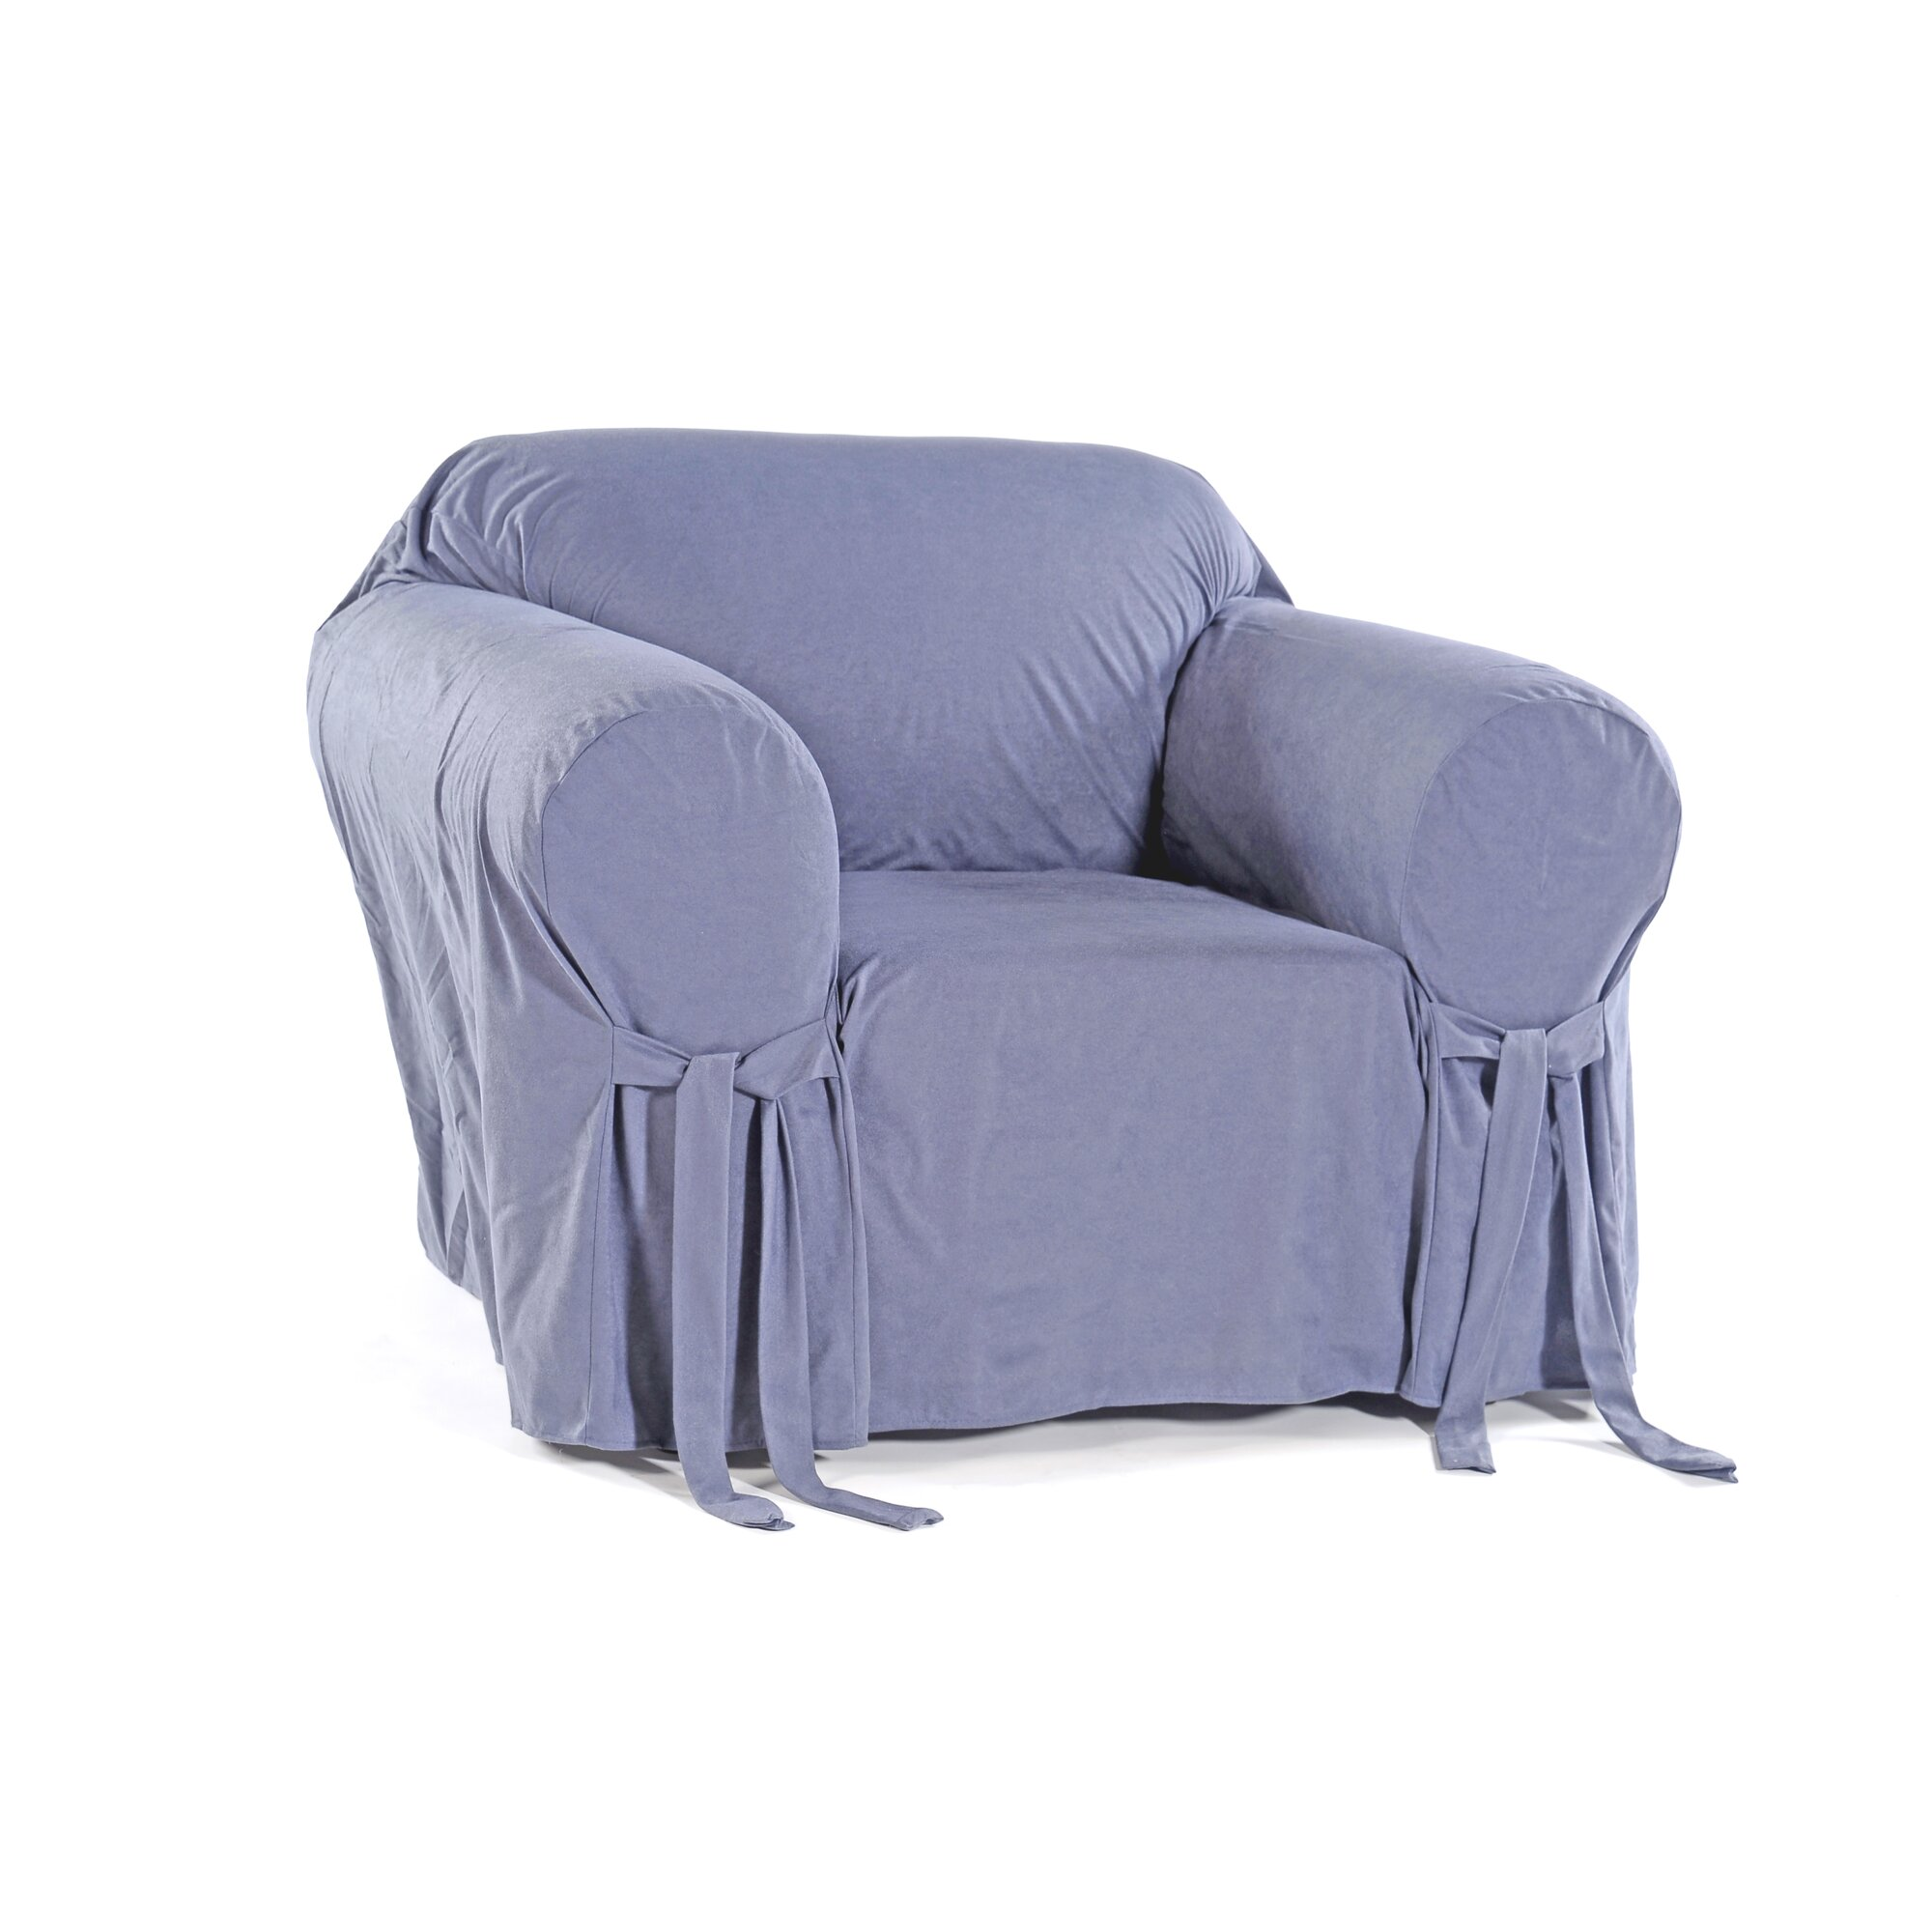 Classic Slipcovers Arm Chair Slipcover | Wayfair.ca